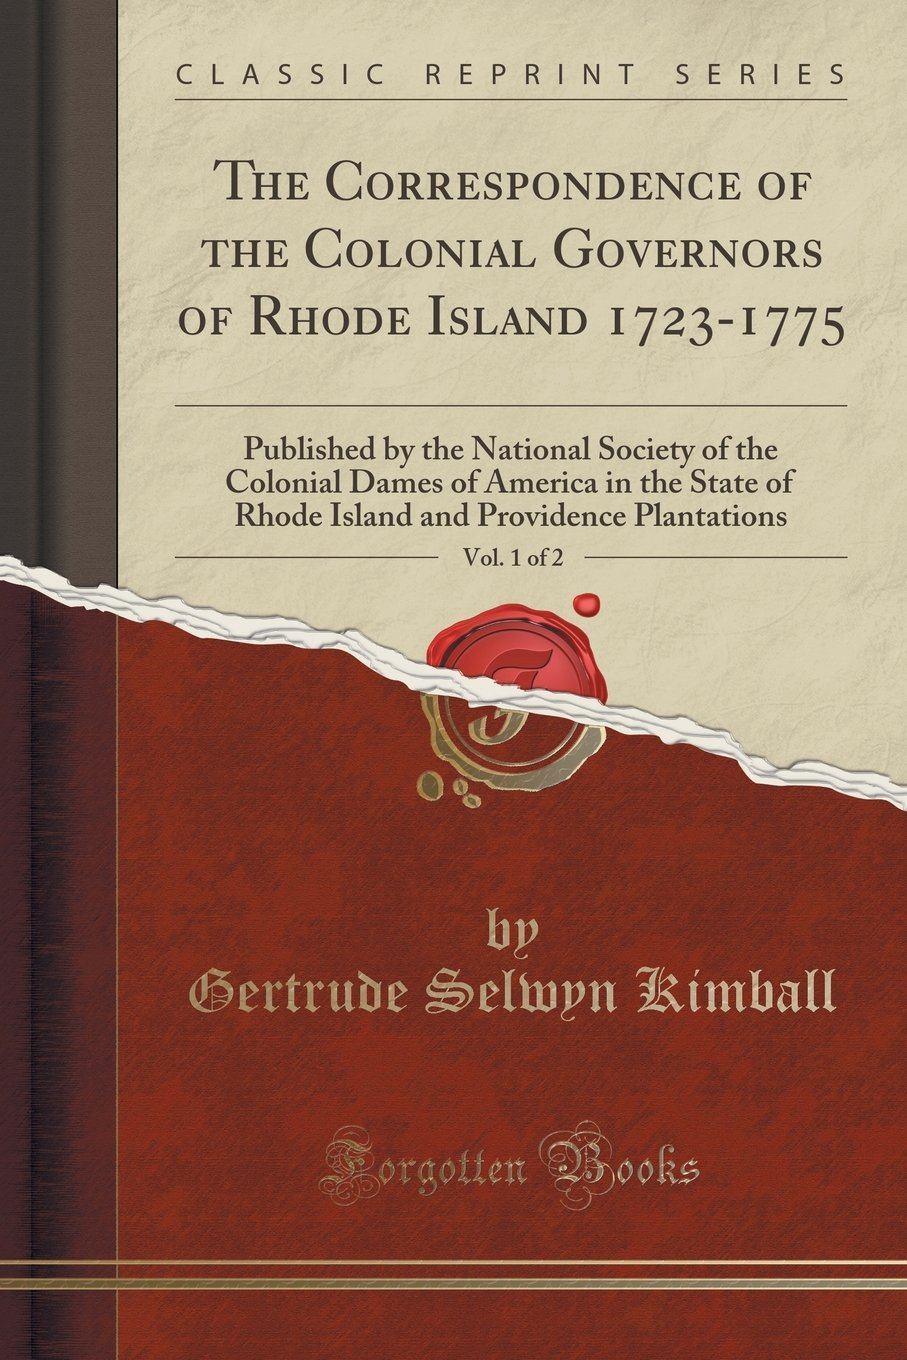 The Correspondence of the Colonial Governors of Rhode Island 1723-1775, Vol. 1 of 2: Published by the National Society of the Colonial Dames of ... and Providence Plantations (Classic Reprint)